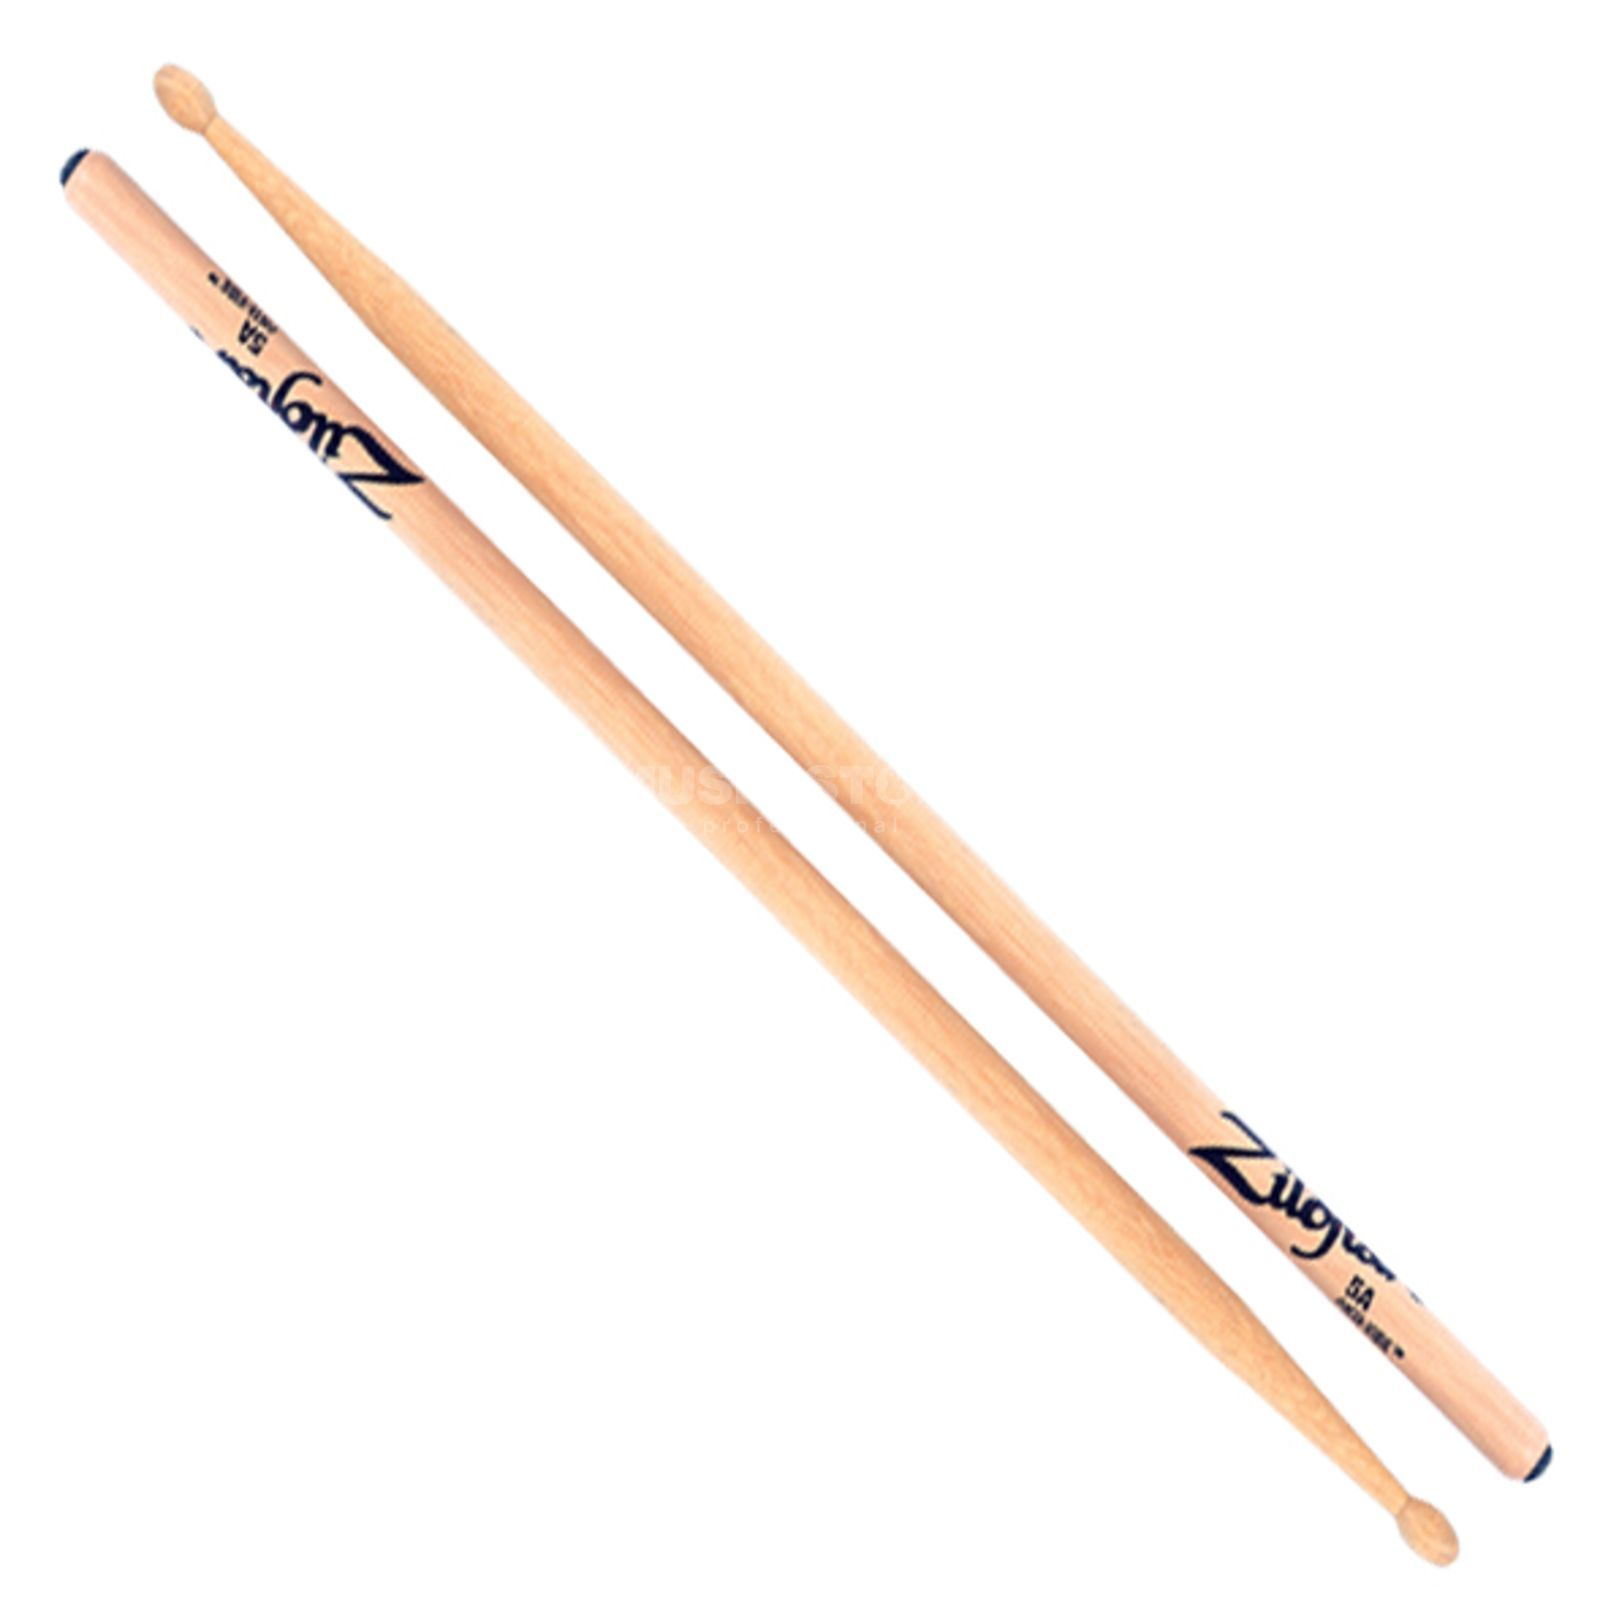 Zildjian Anti-Vibe 5A Sticks, Wood Tip Produktbild